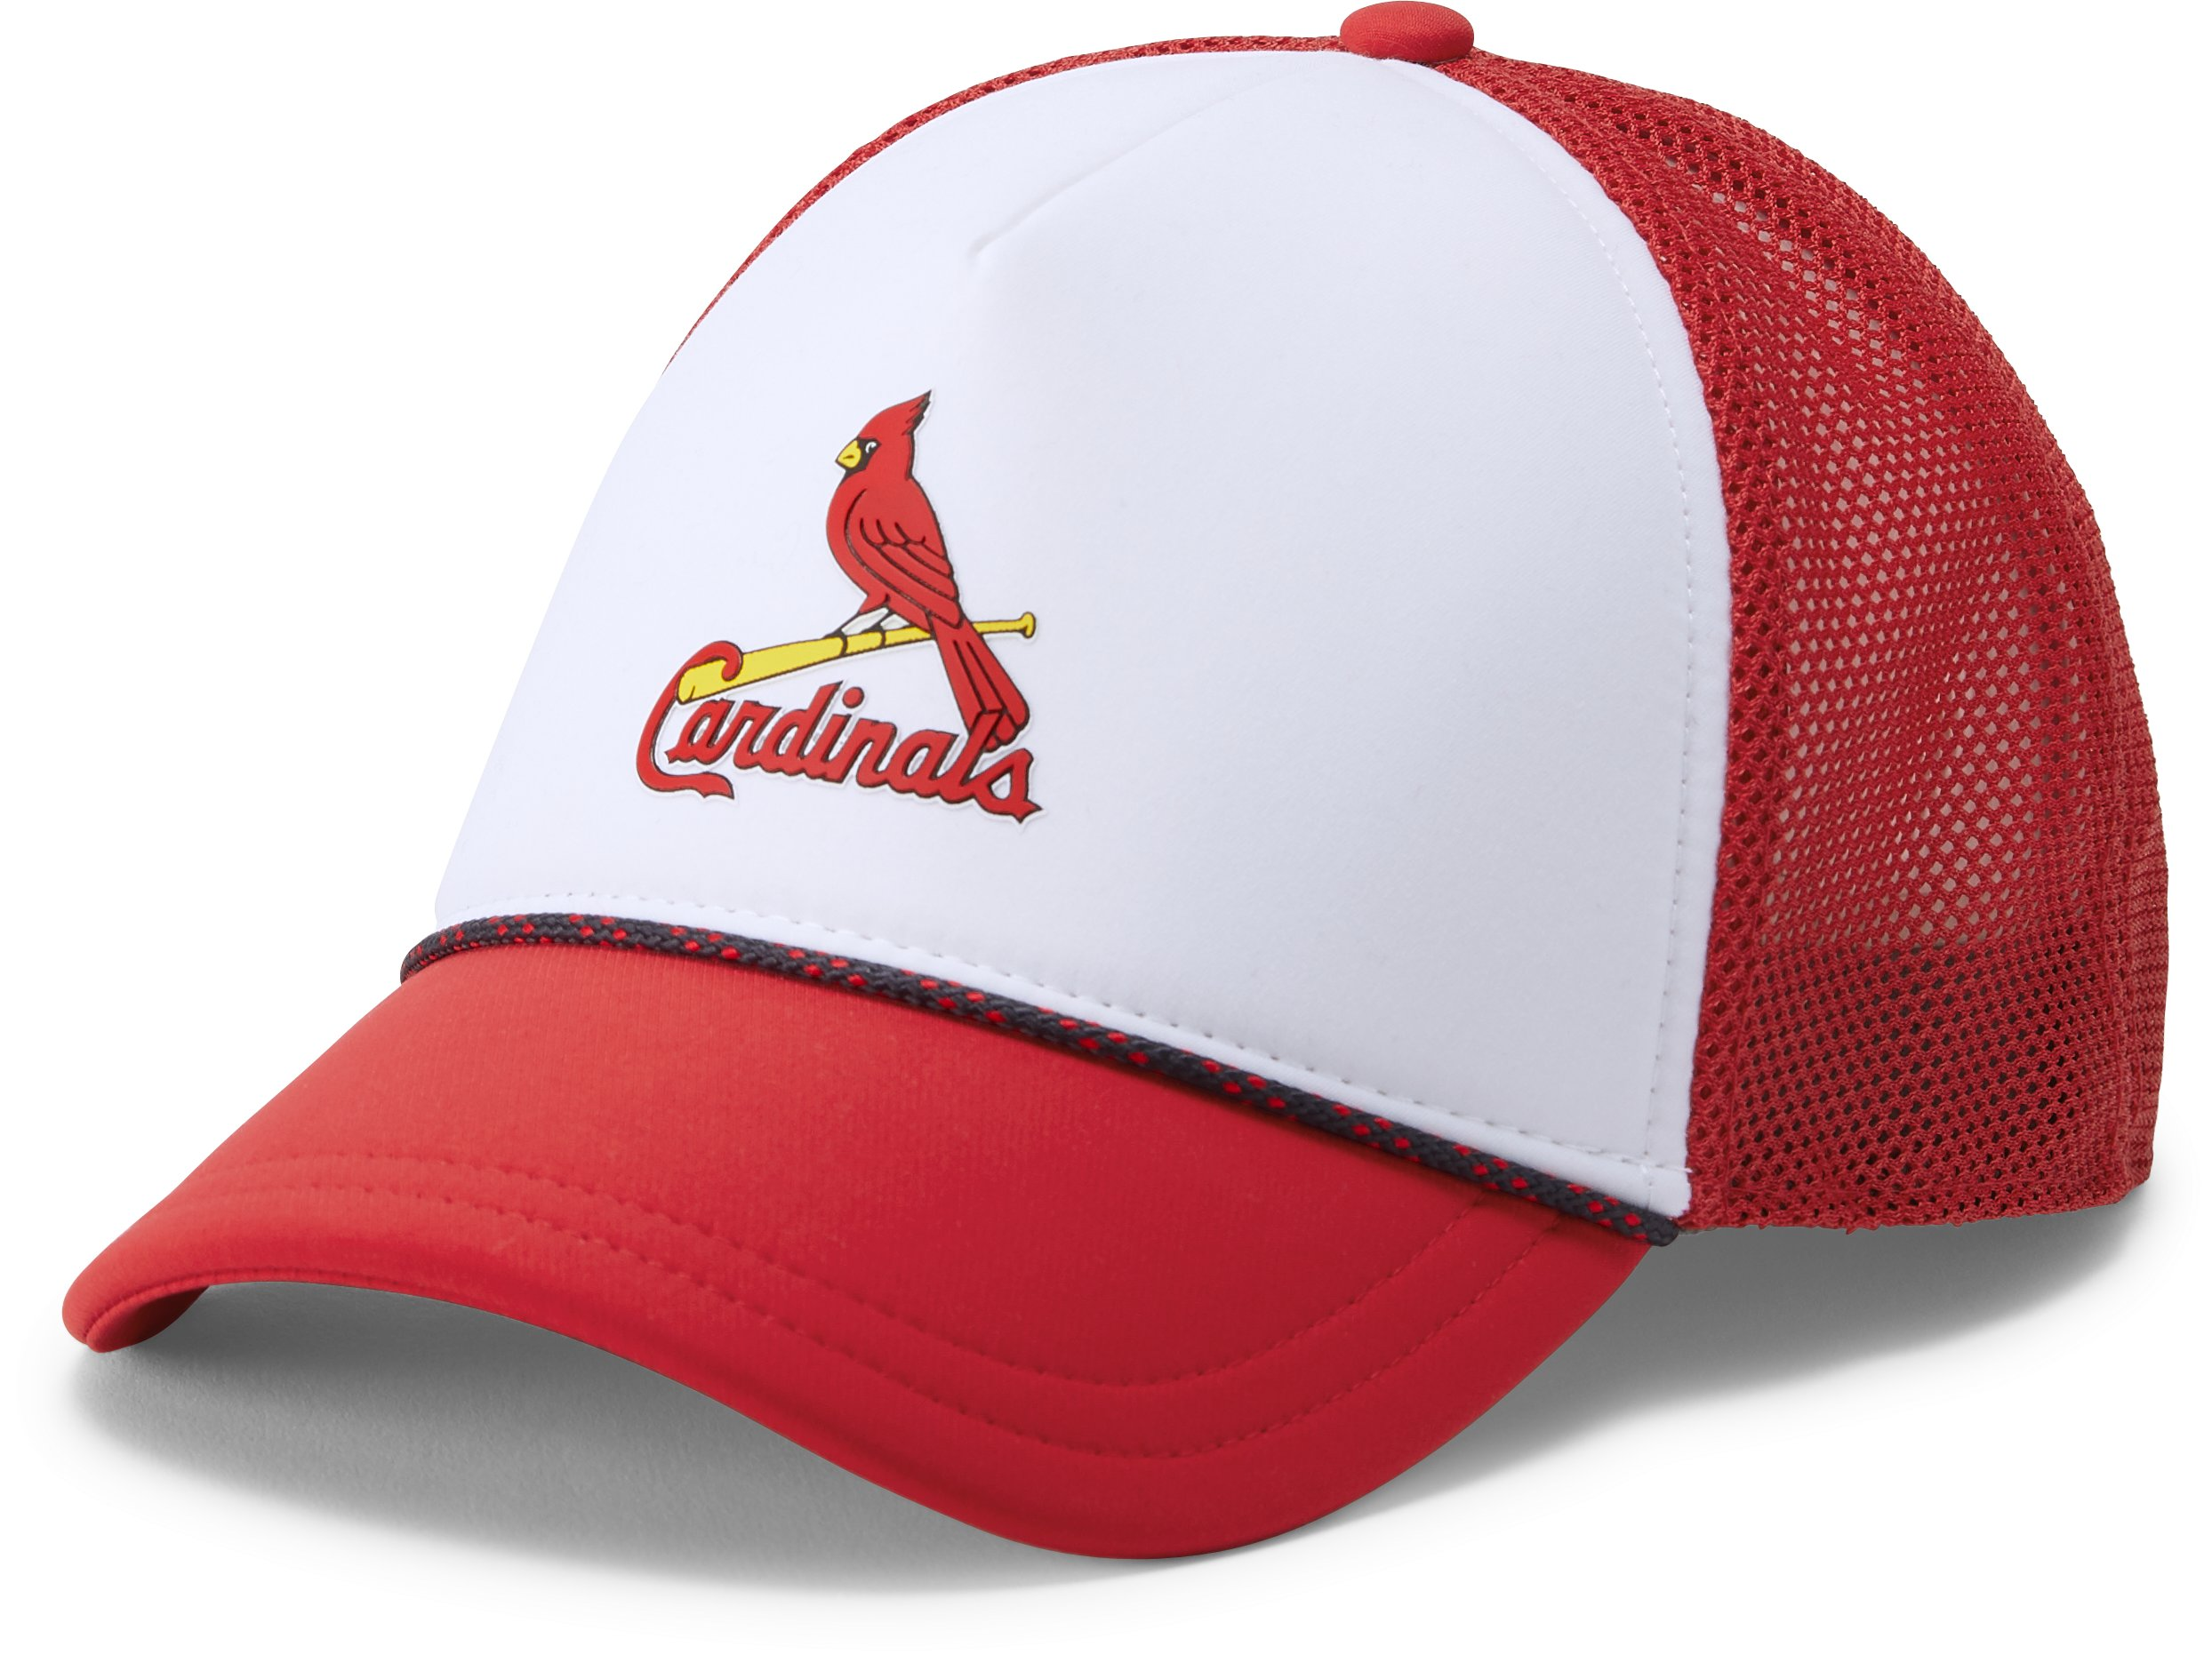 Women's MLB Foam Trucker Cap, White